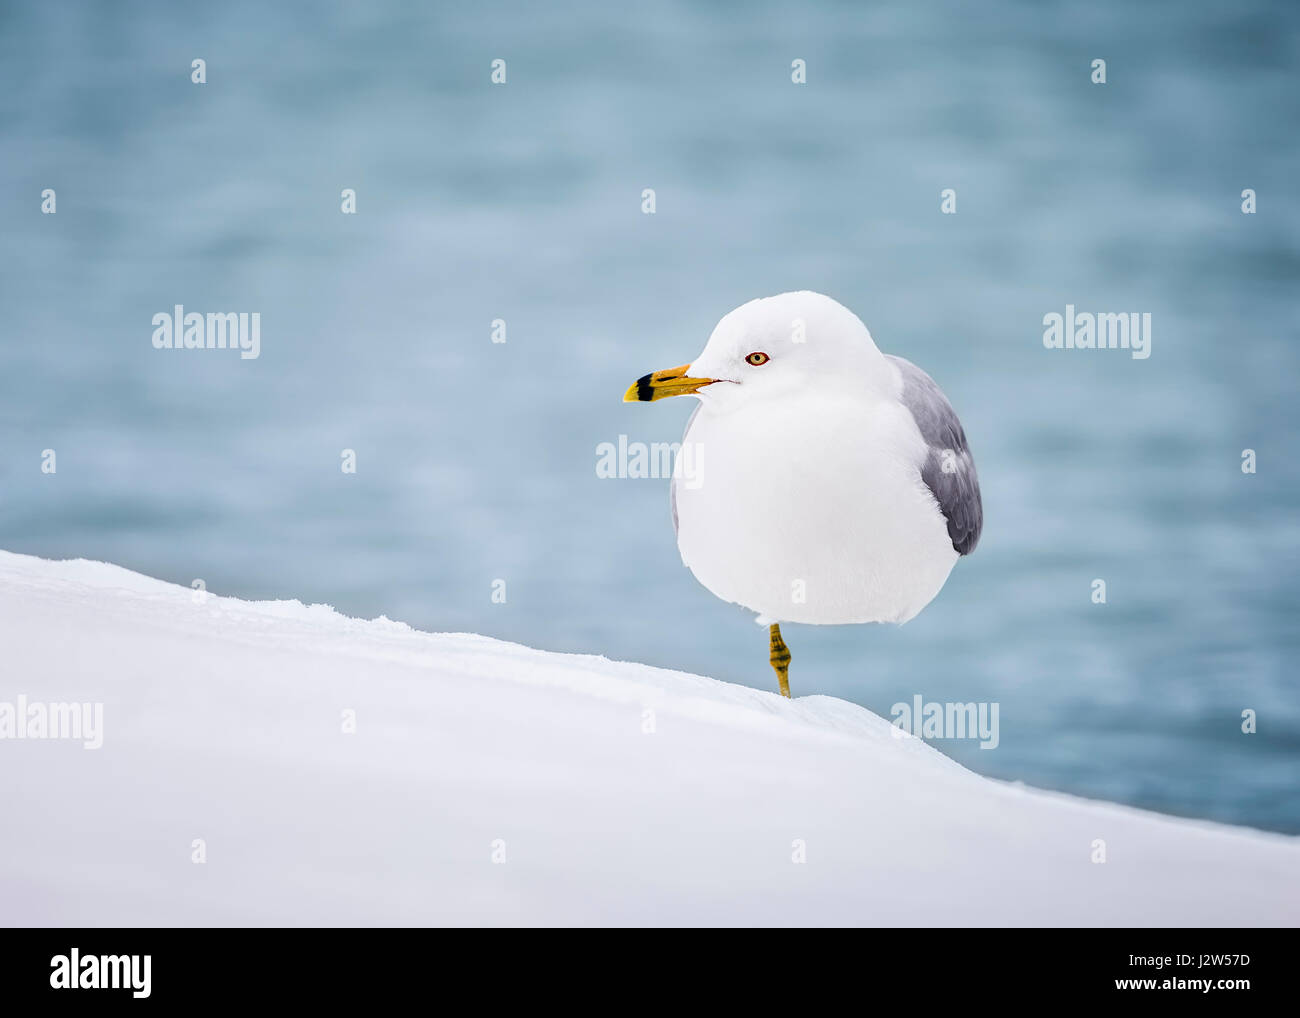 Ring-billed Gull standing on one leg in snow. - Stock Image